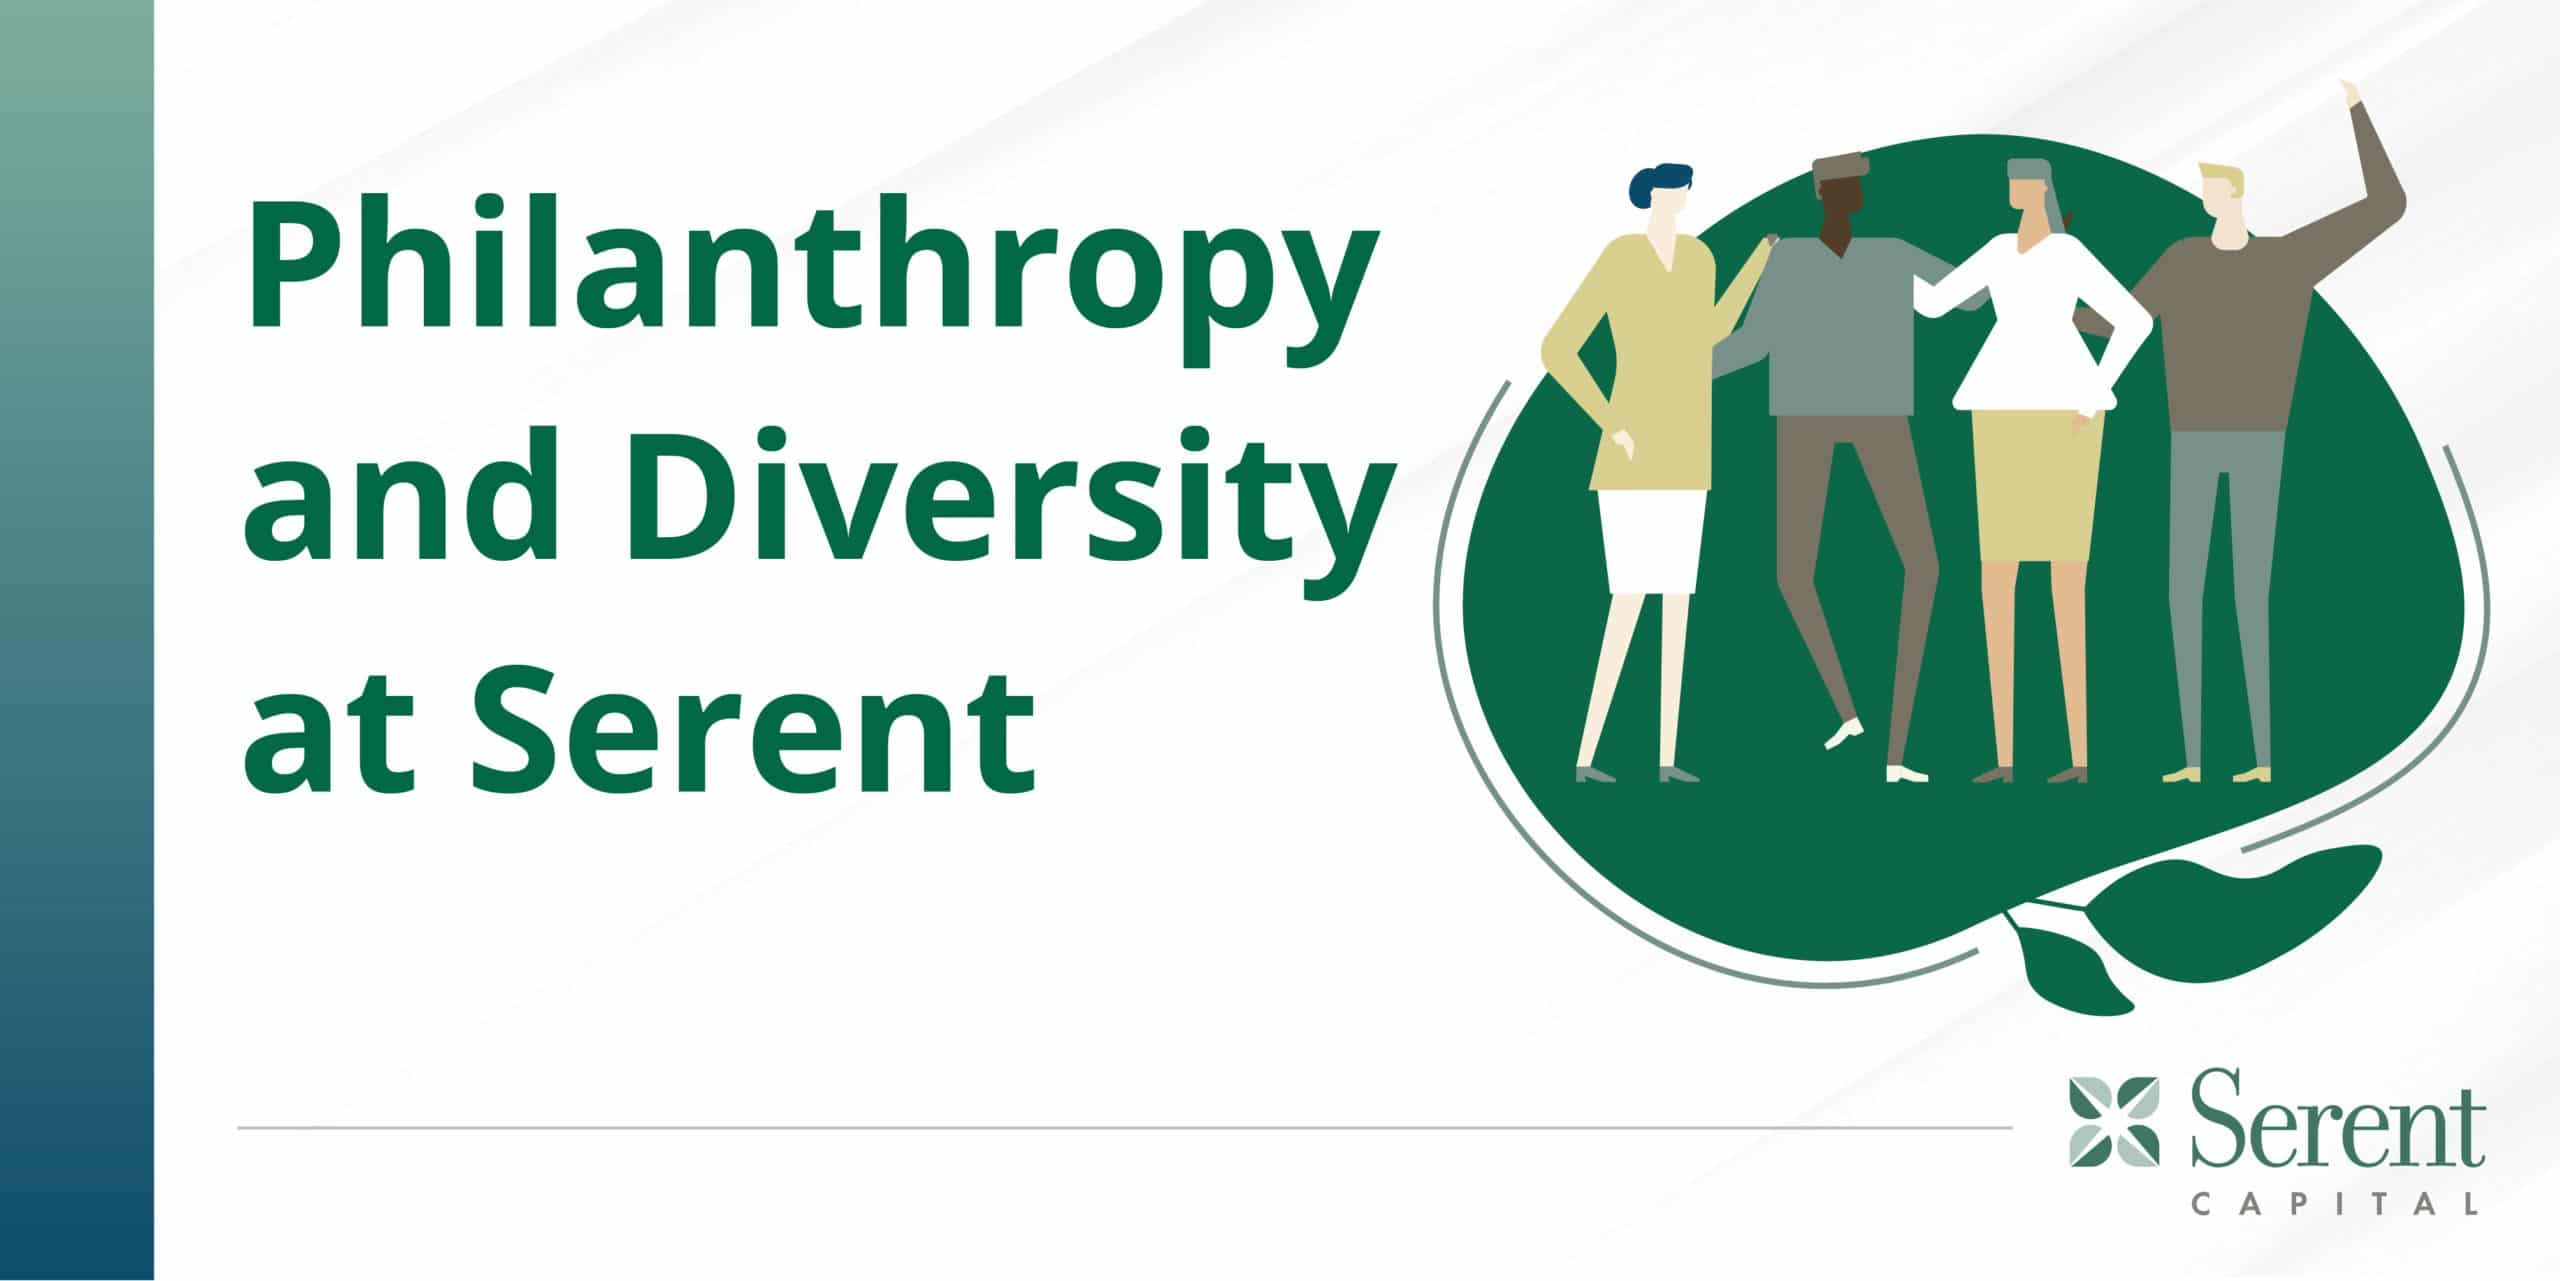 Philanthropy and Diversity at Serent